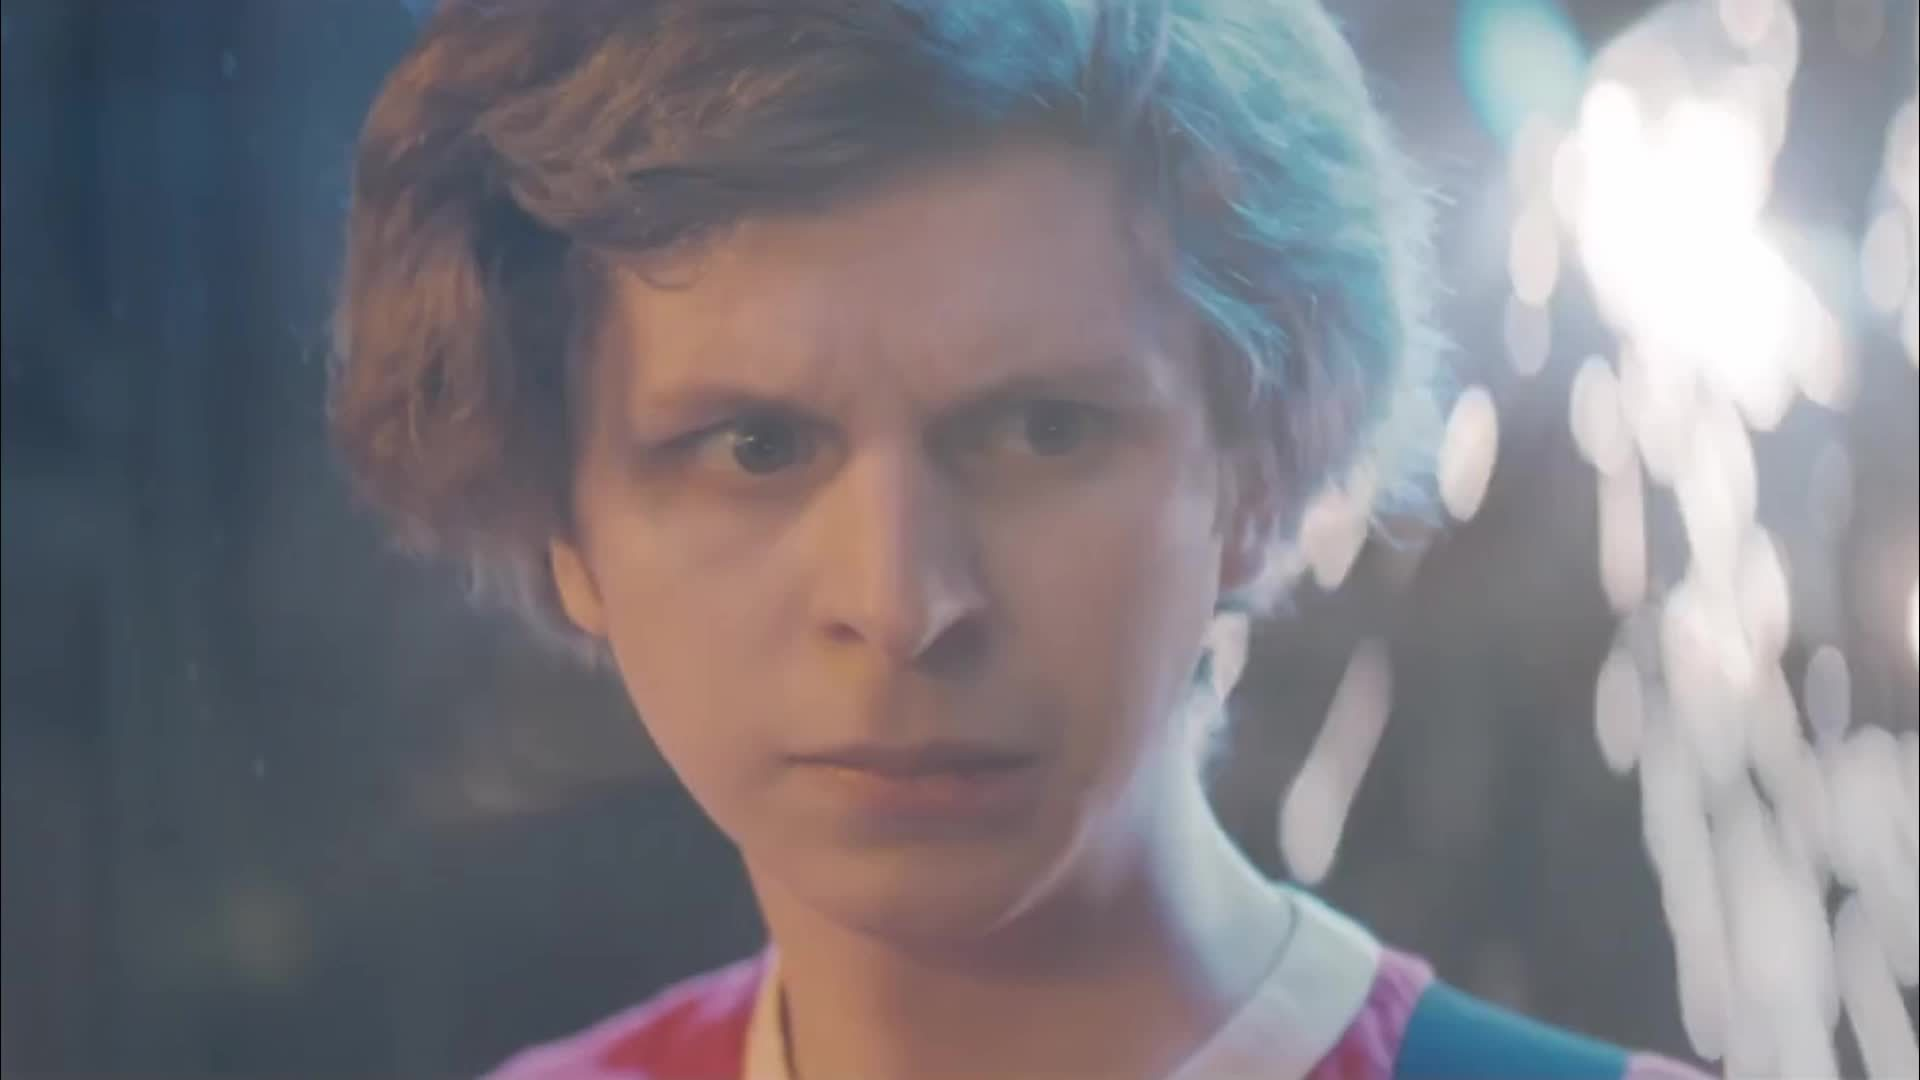 Michael Cera, highqualitygifs, We Are /r/HighQualityGifs GIFs